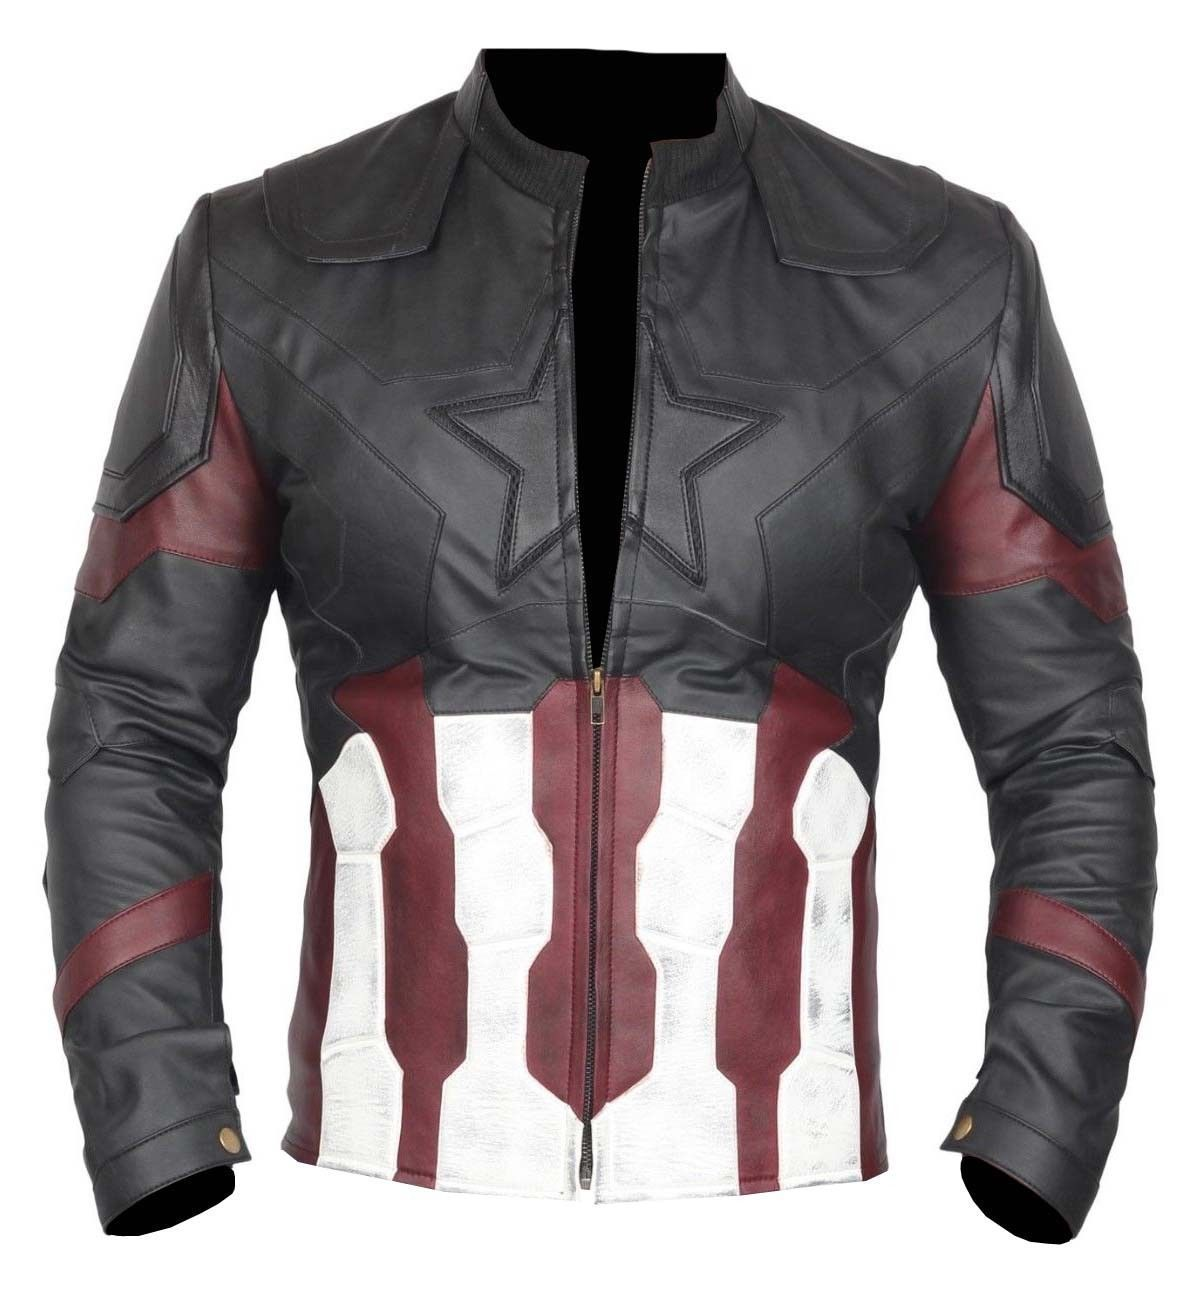 Captain America Avengers Infinity War Leather Jacket